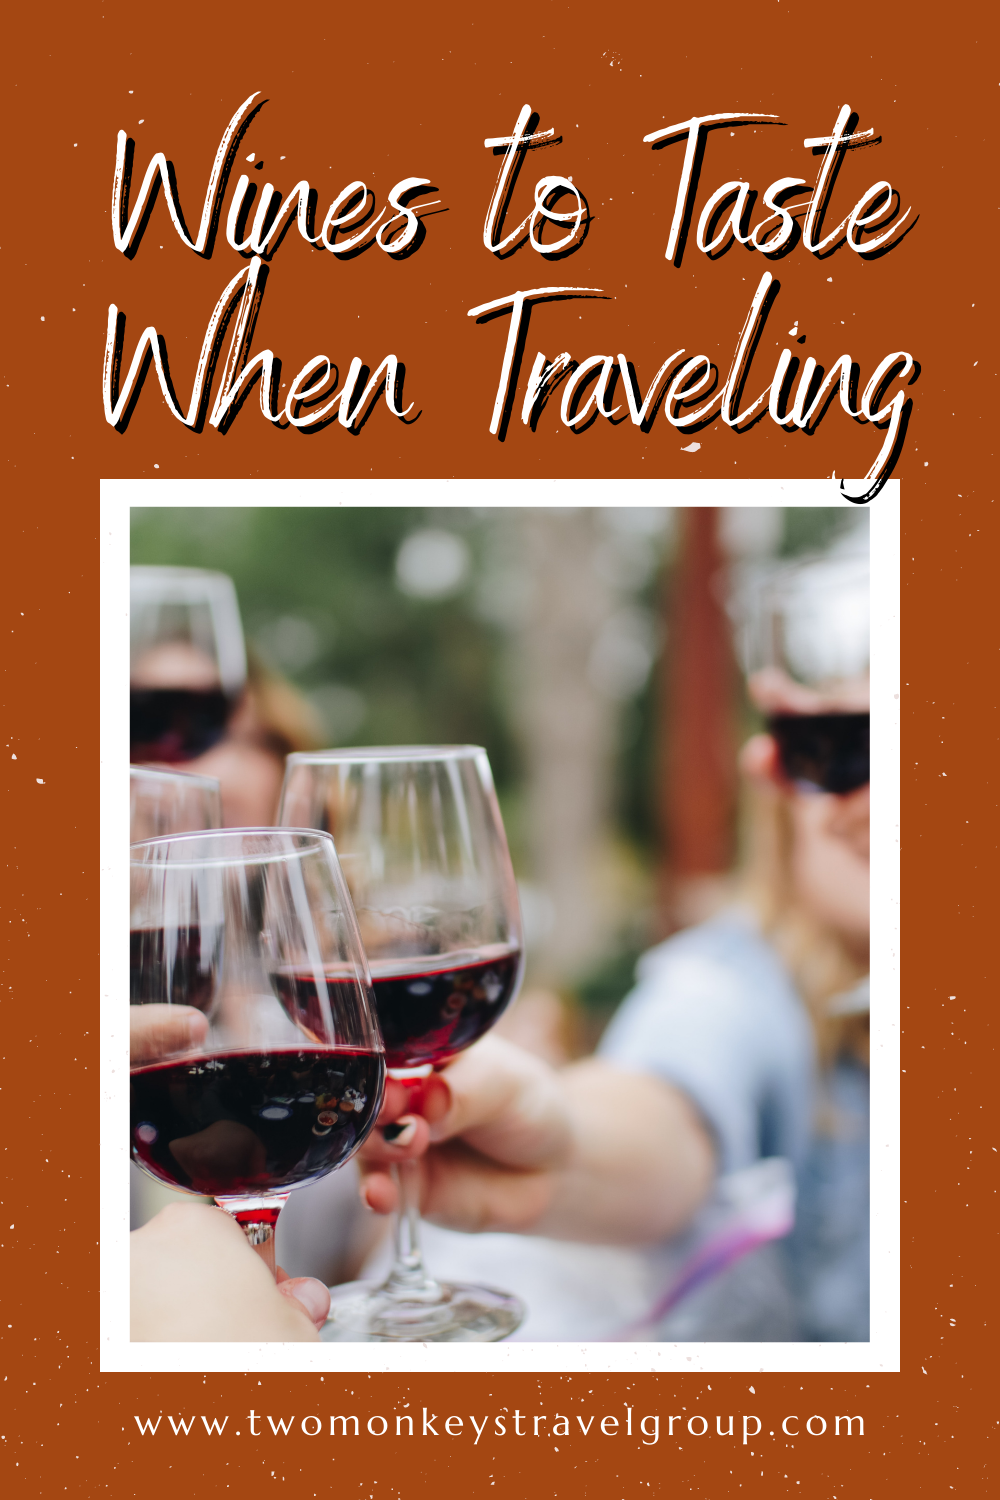 Top 5 Wines to Taste When Traveling